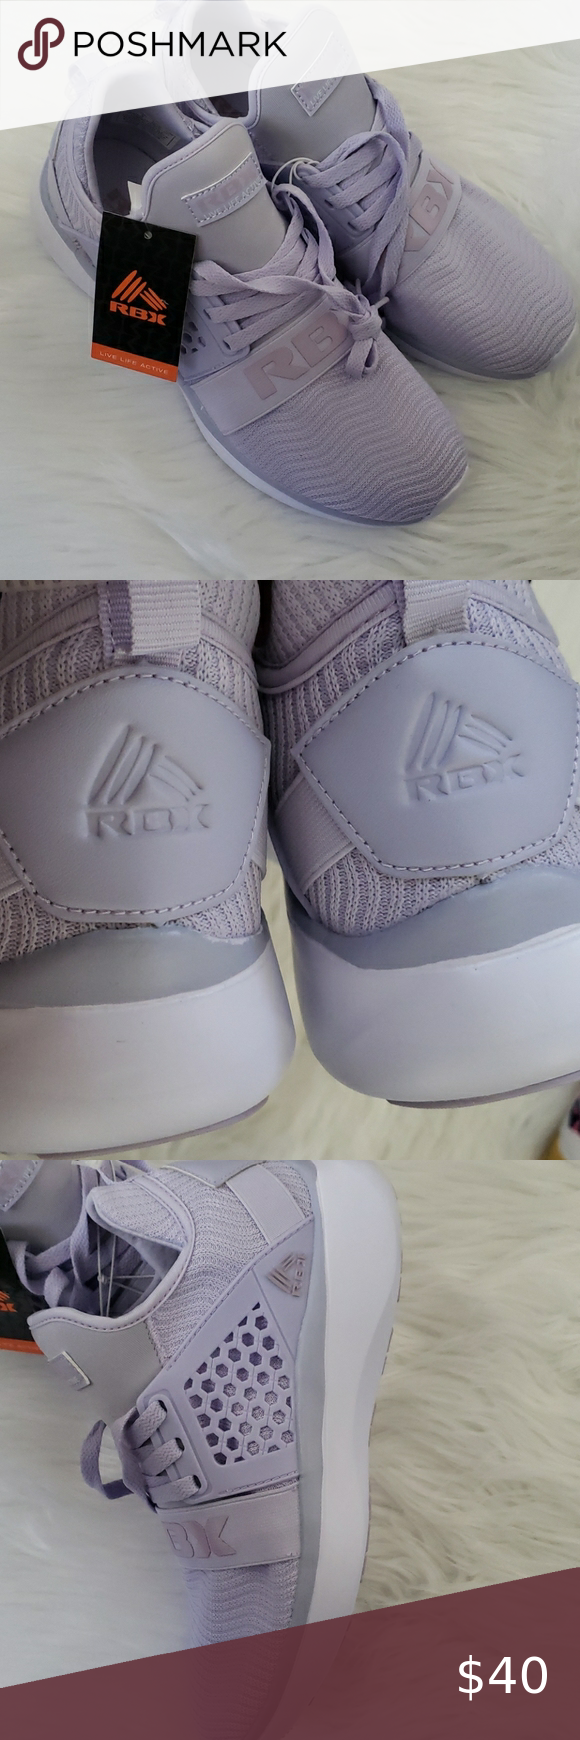 is rbx shoes the same as reebok